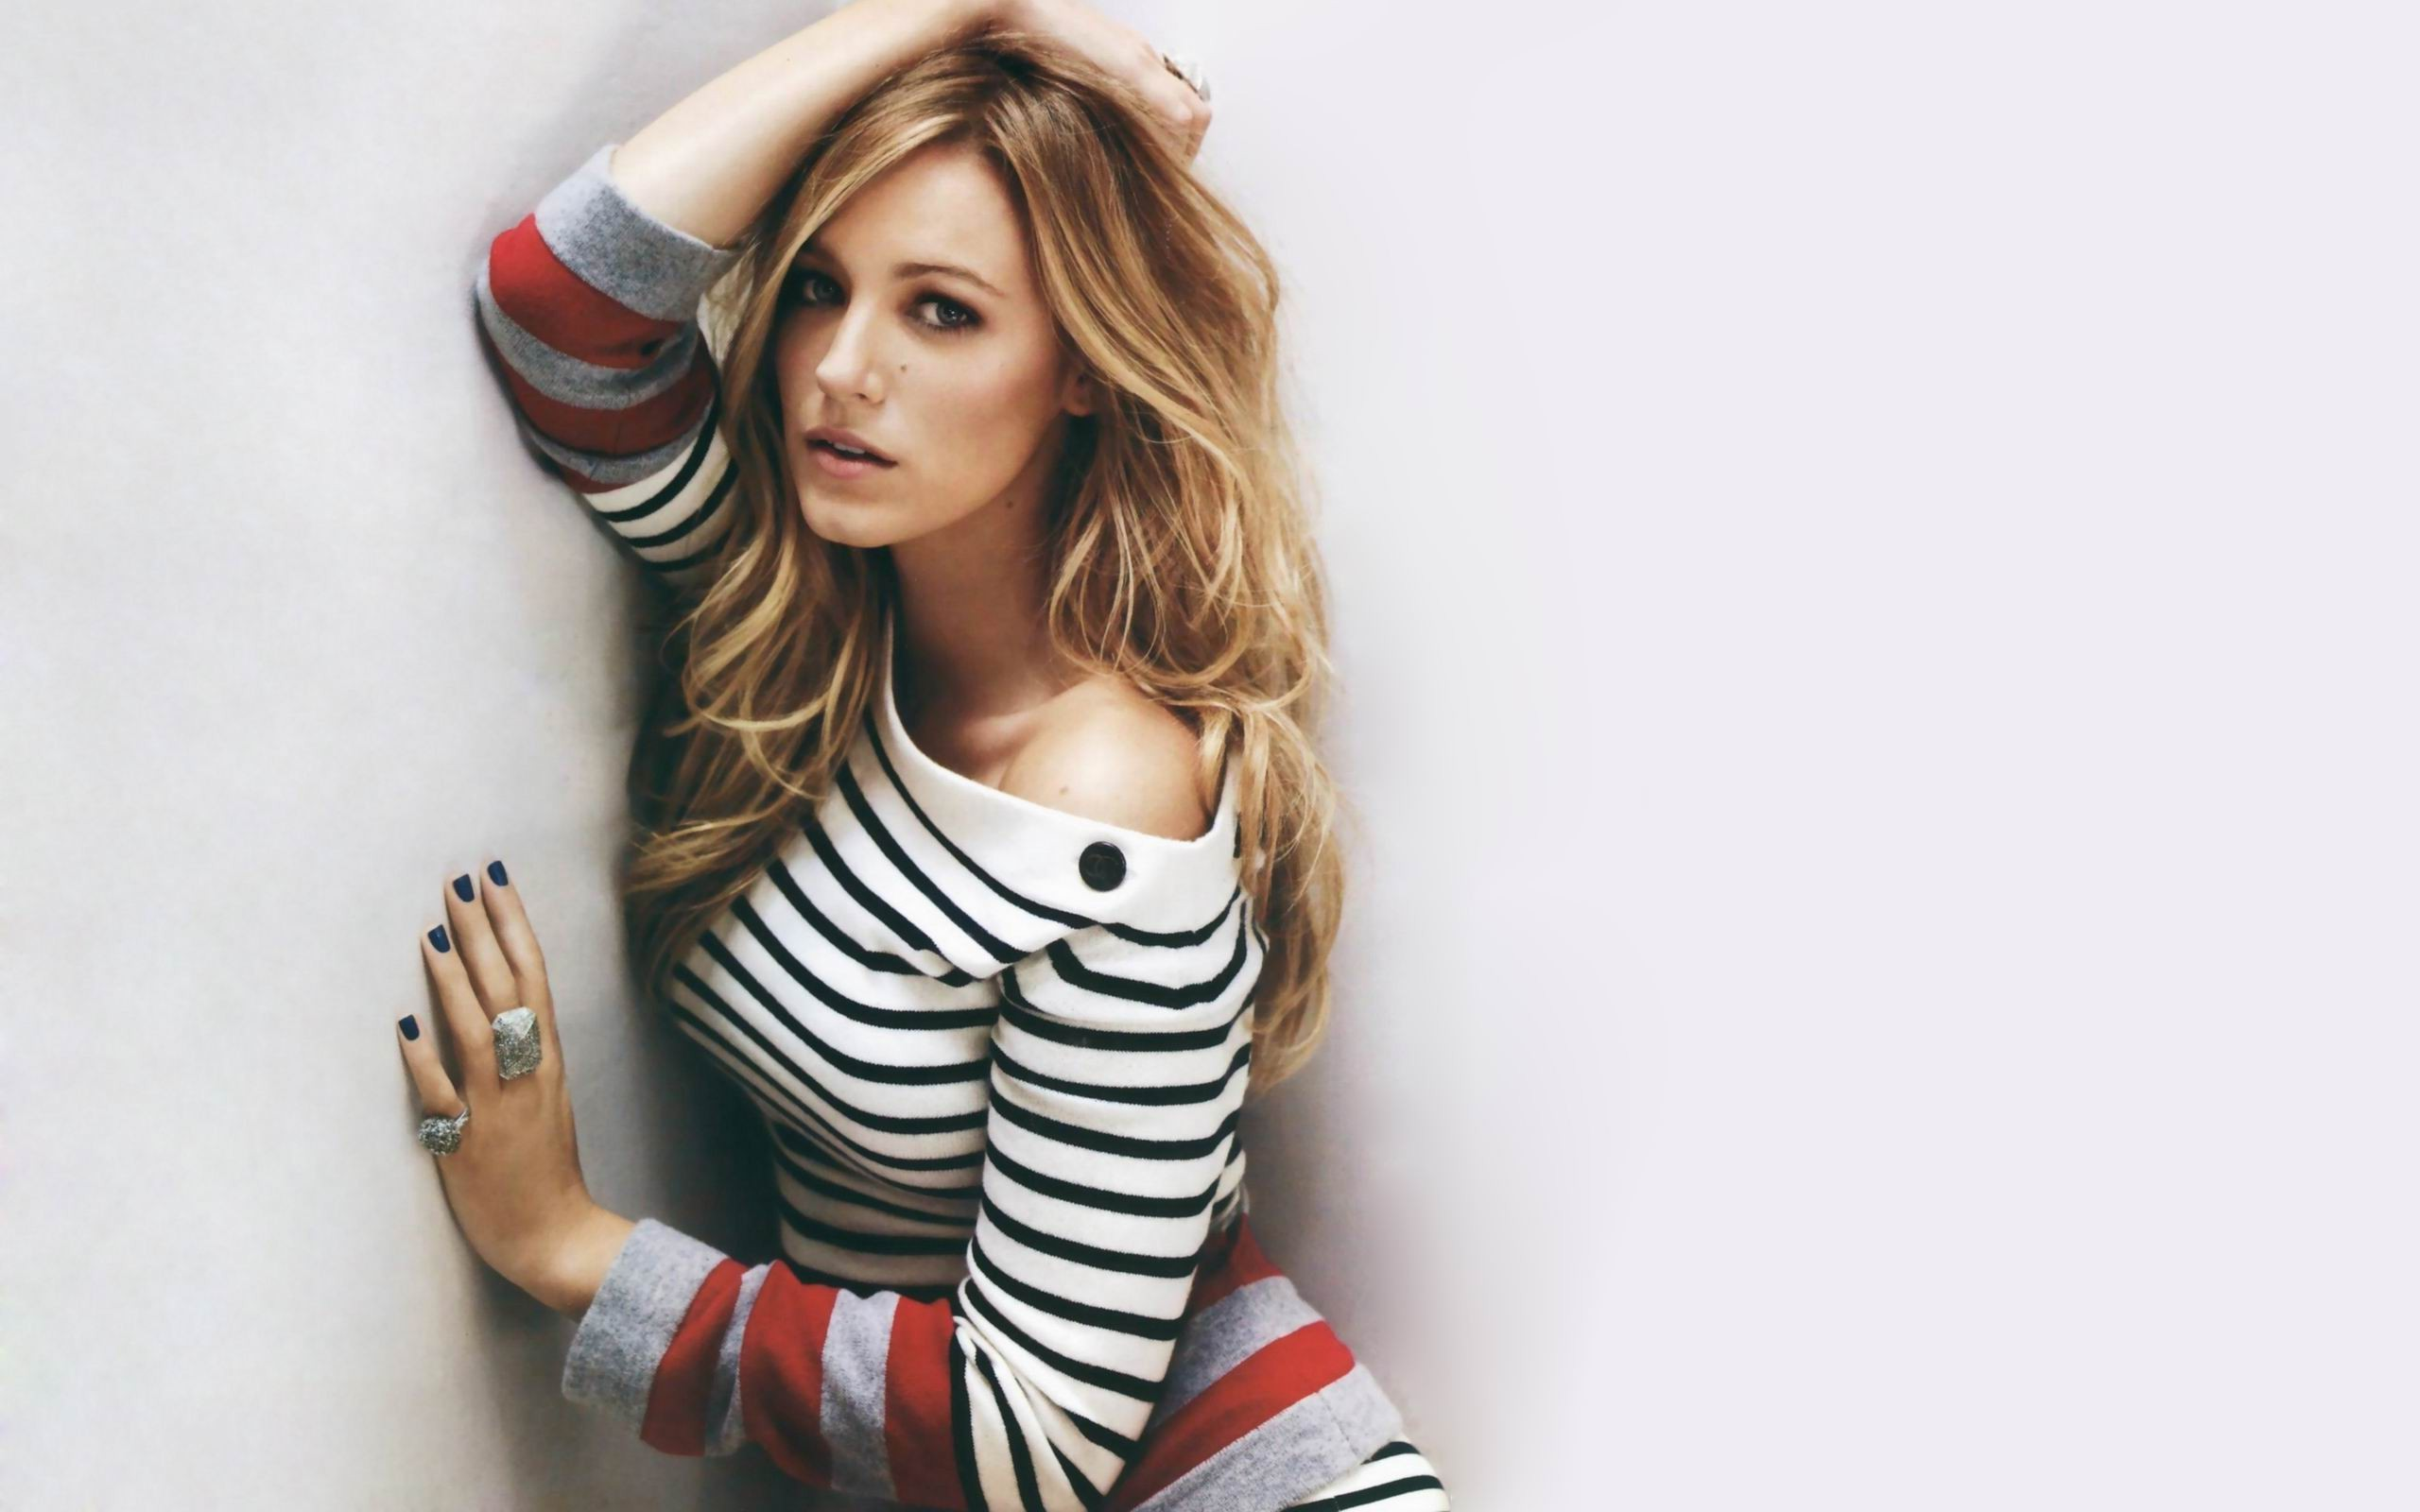 Blake Lively HD Wallpapers